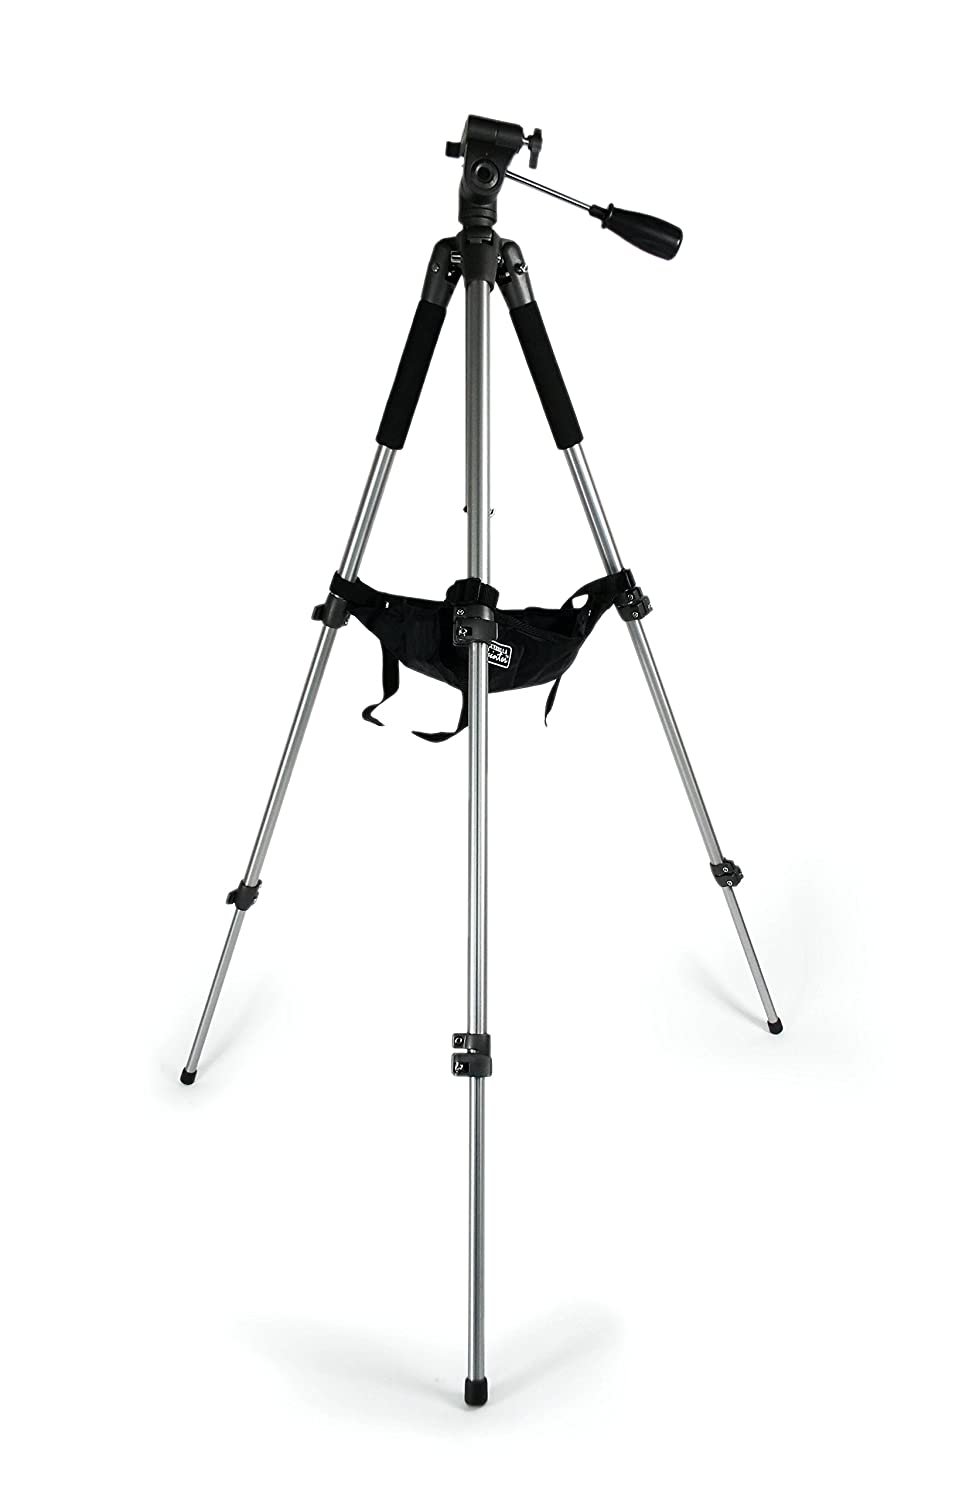 Guerrilla Painter Field Tripod Kit